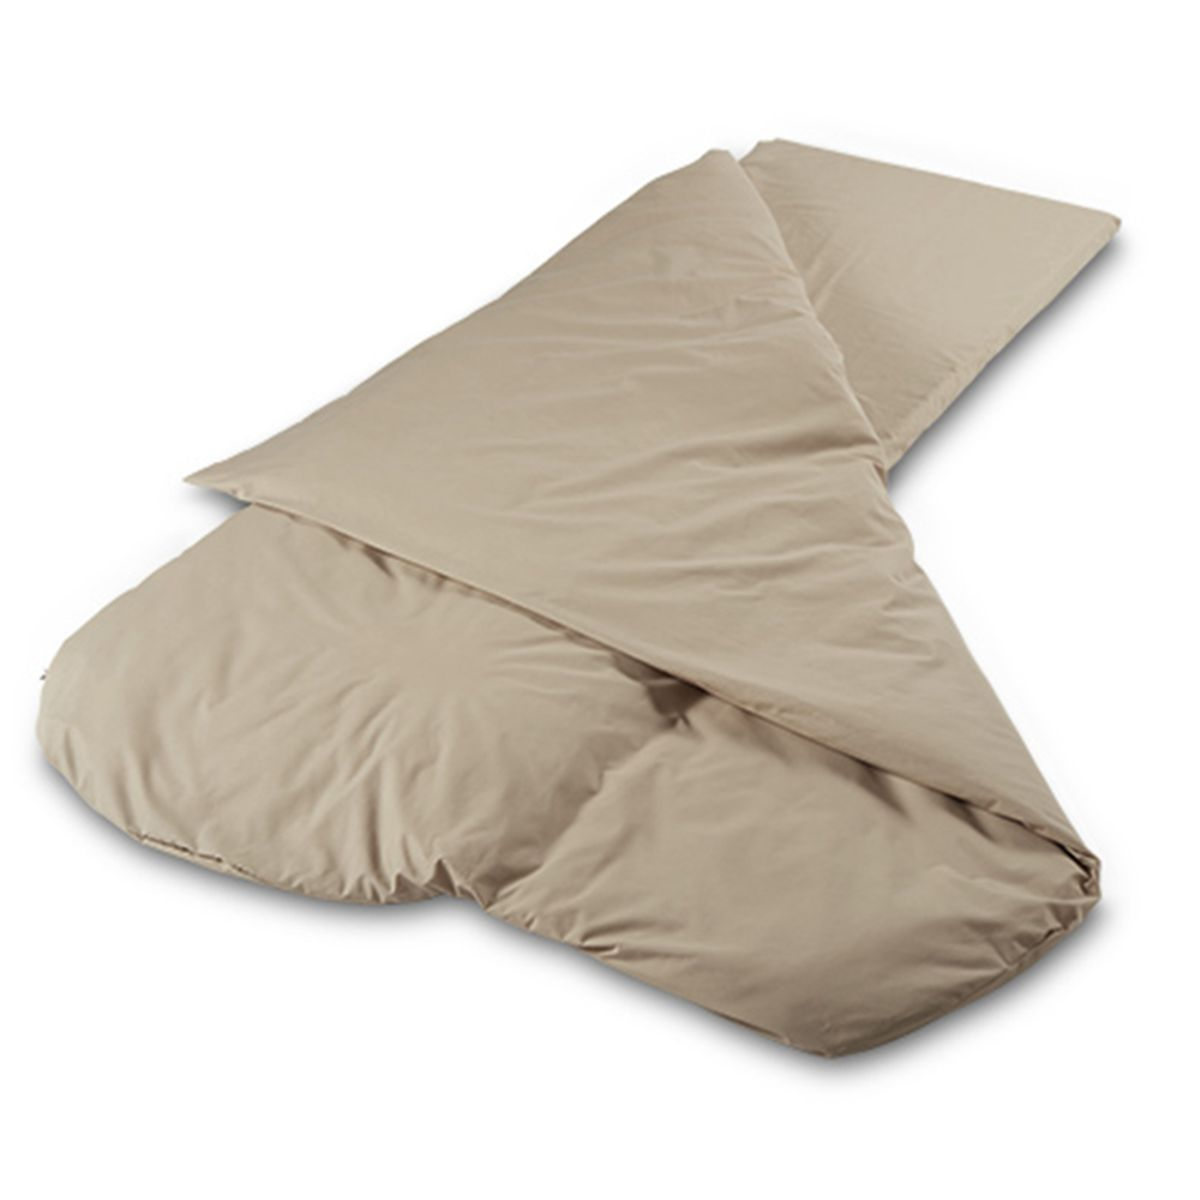 2.5cm Duvalay Compact Sleeping Bag 66cm Summer 4.5 Tog Cappucino